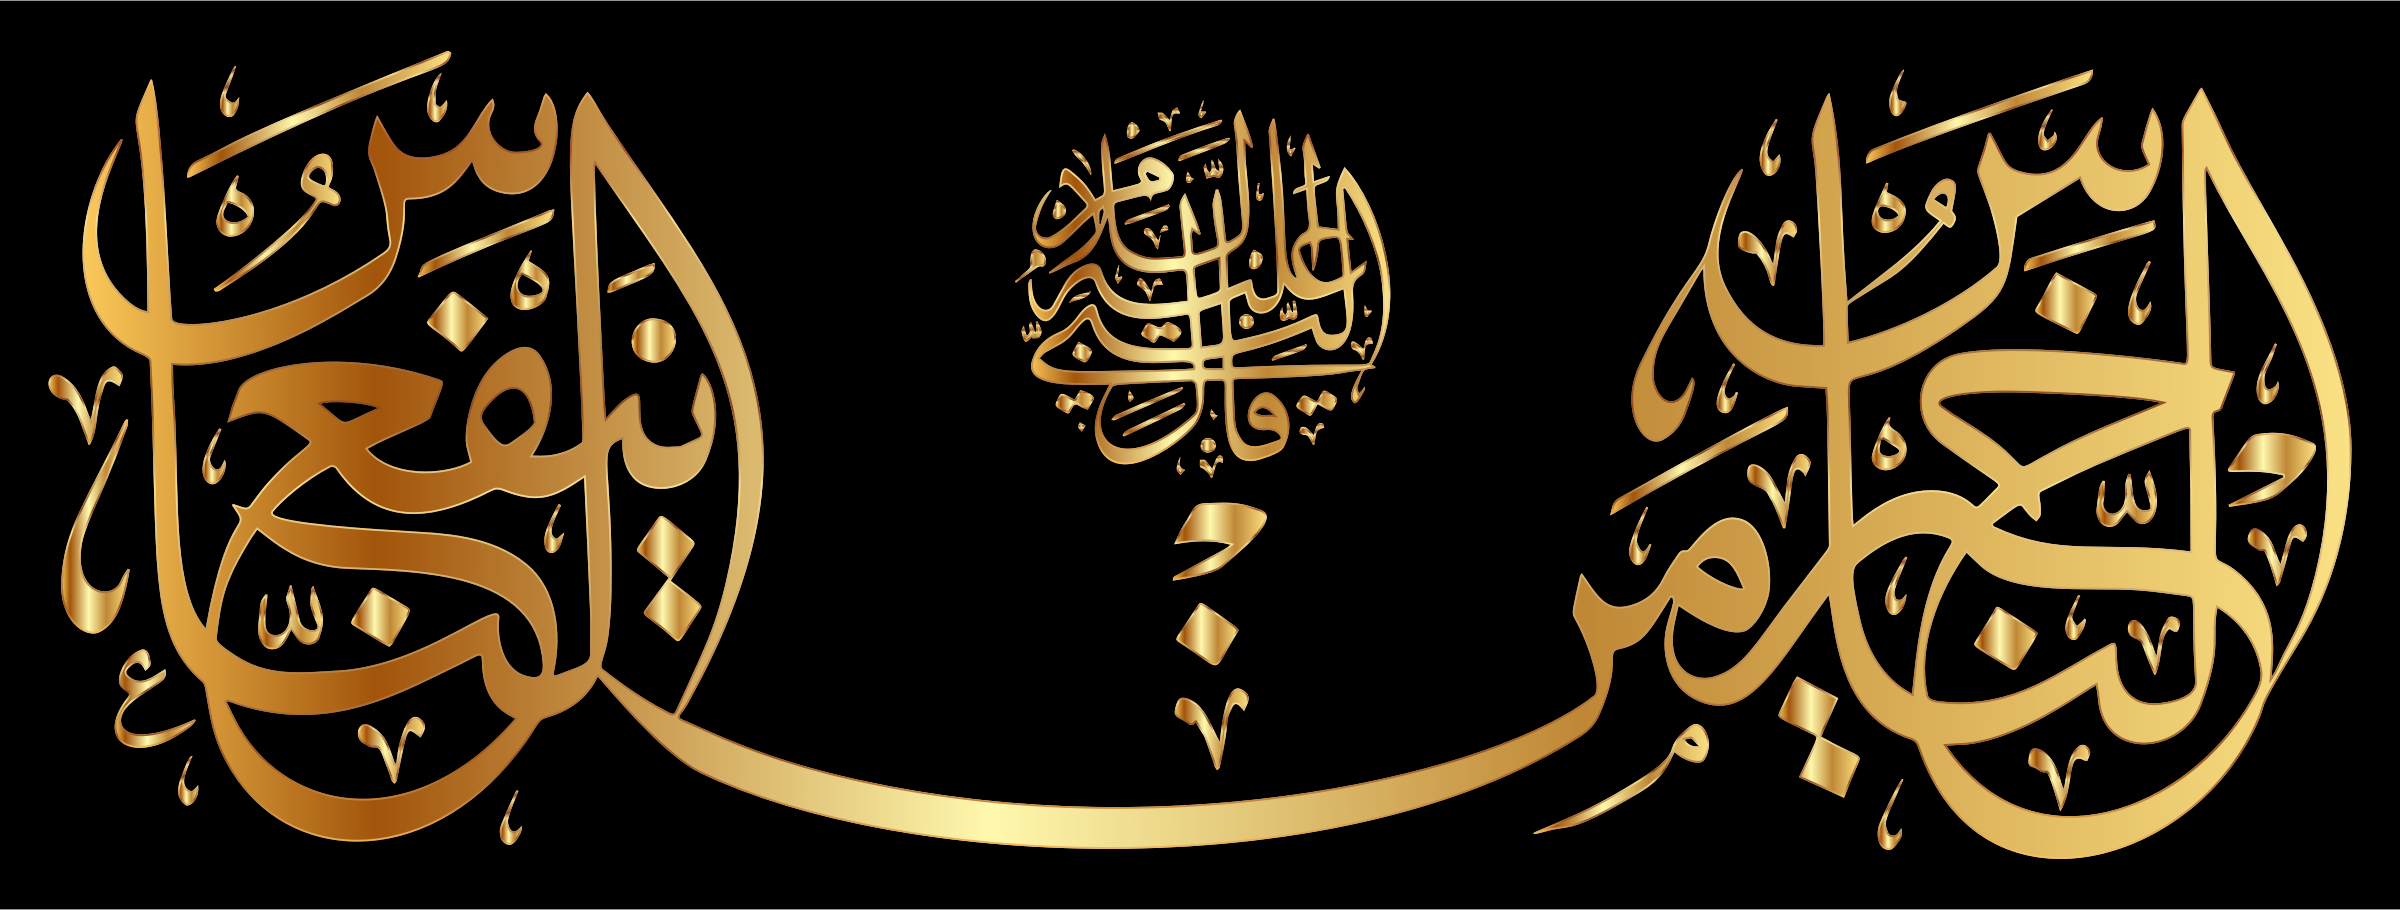 Gold Hadith The Best Of People Is One Who Benefits People Calligraphy by GDJ